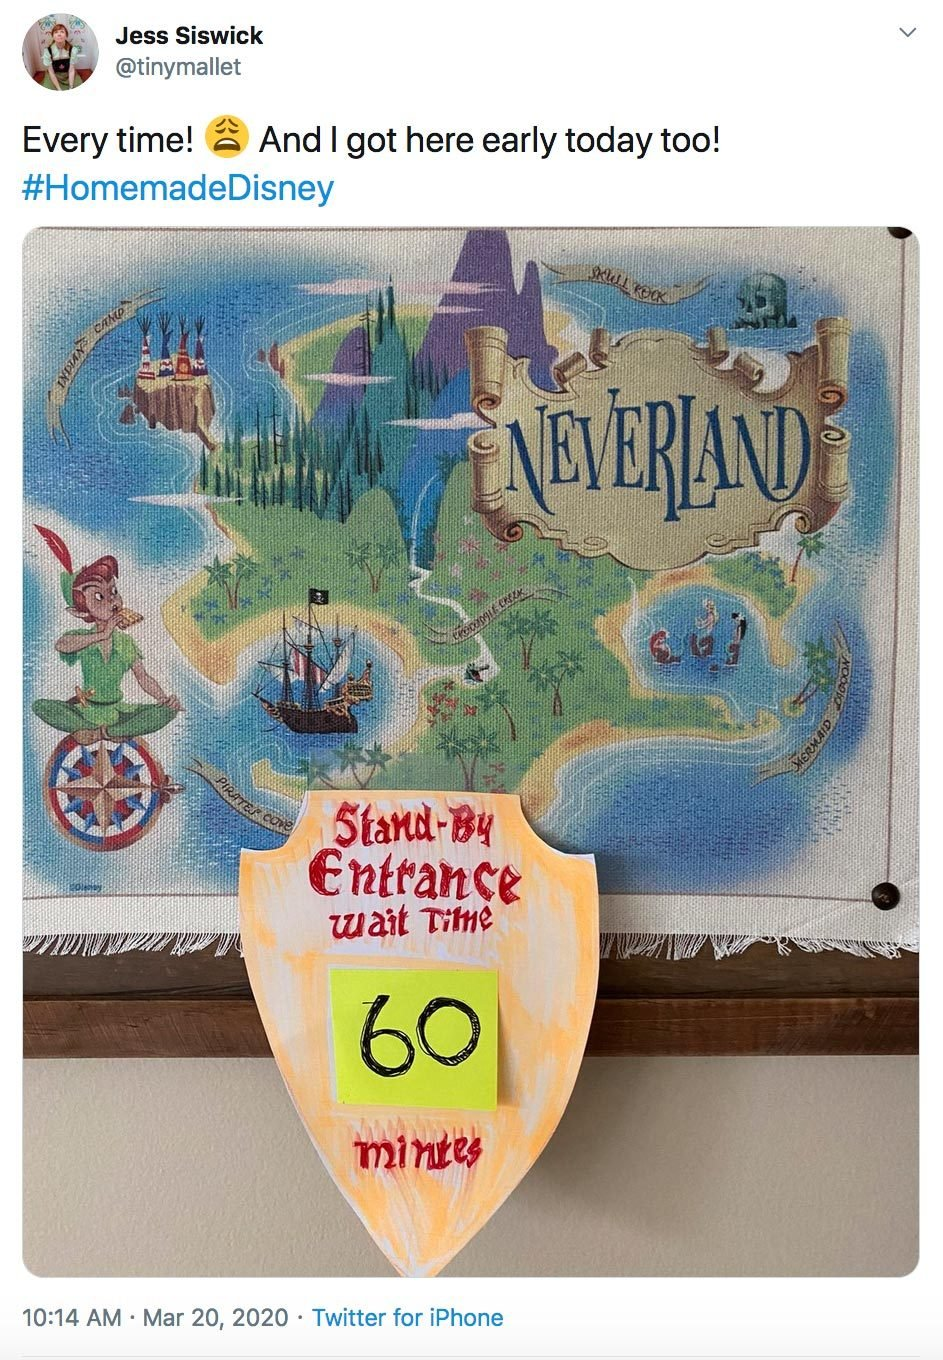 tinymallet neverland wait time